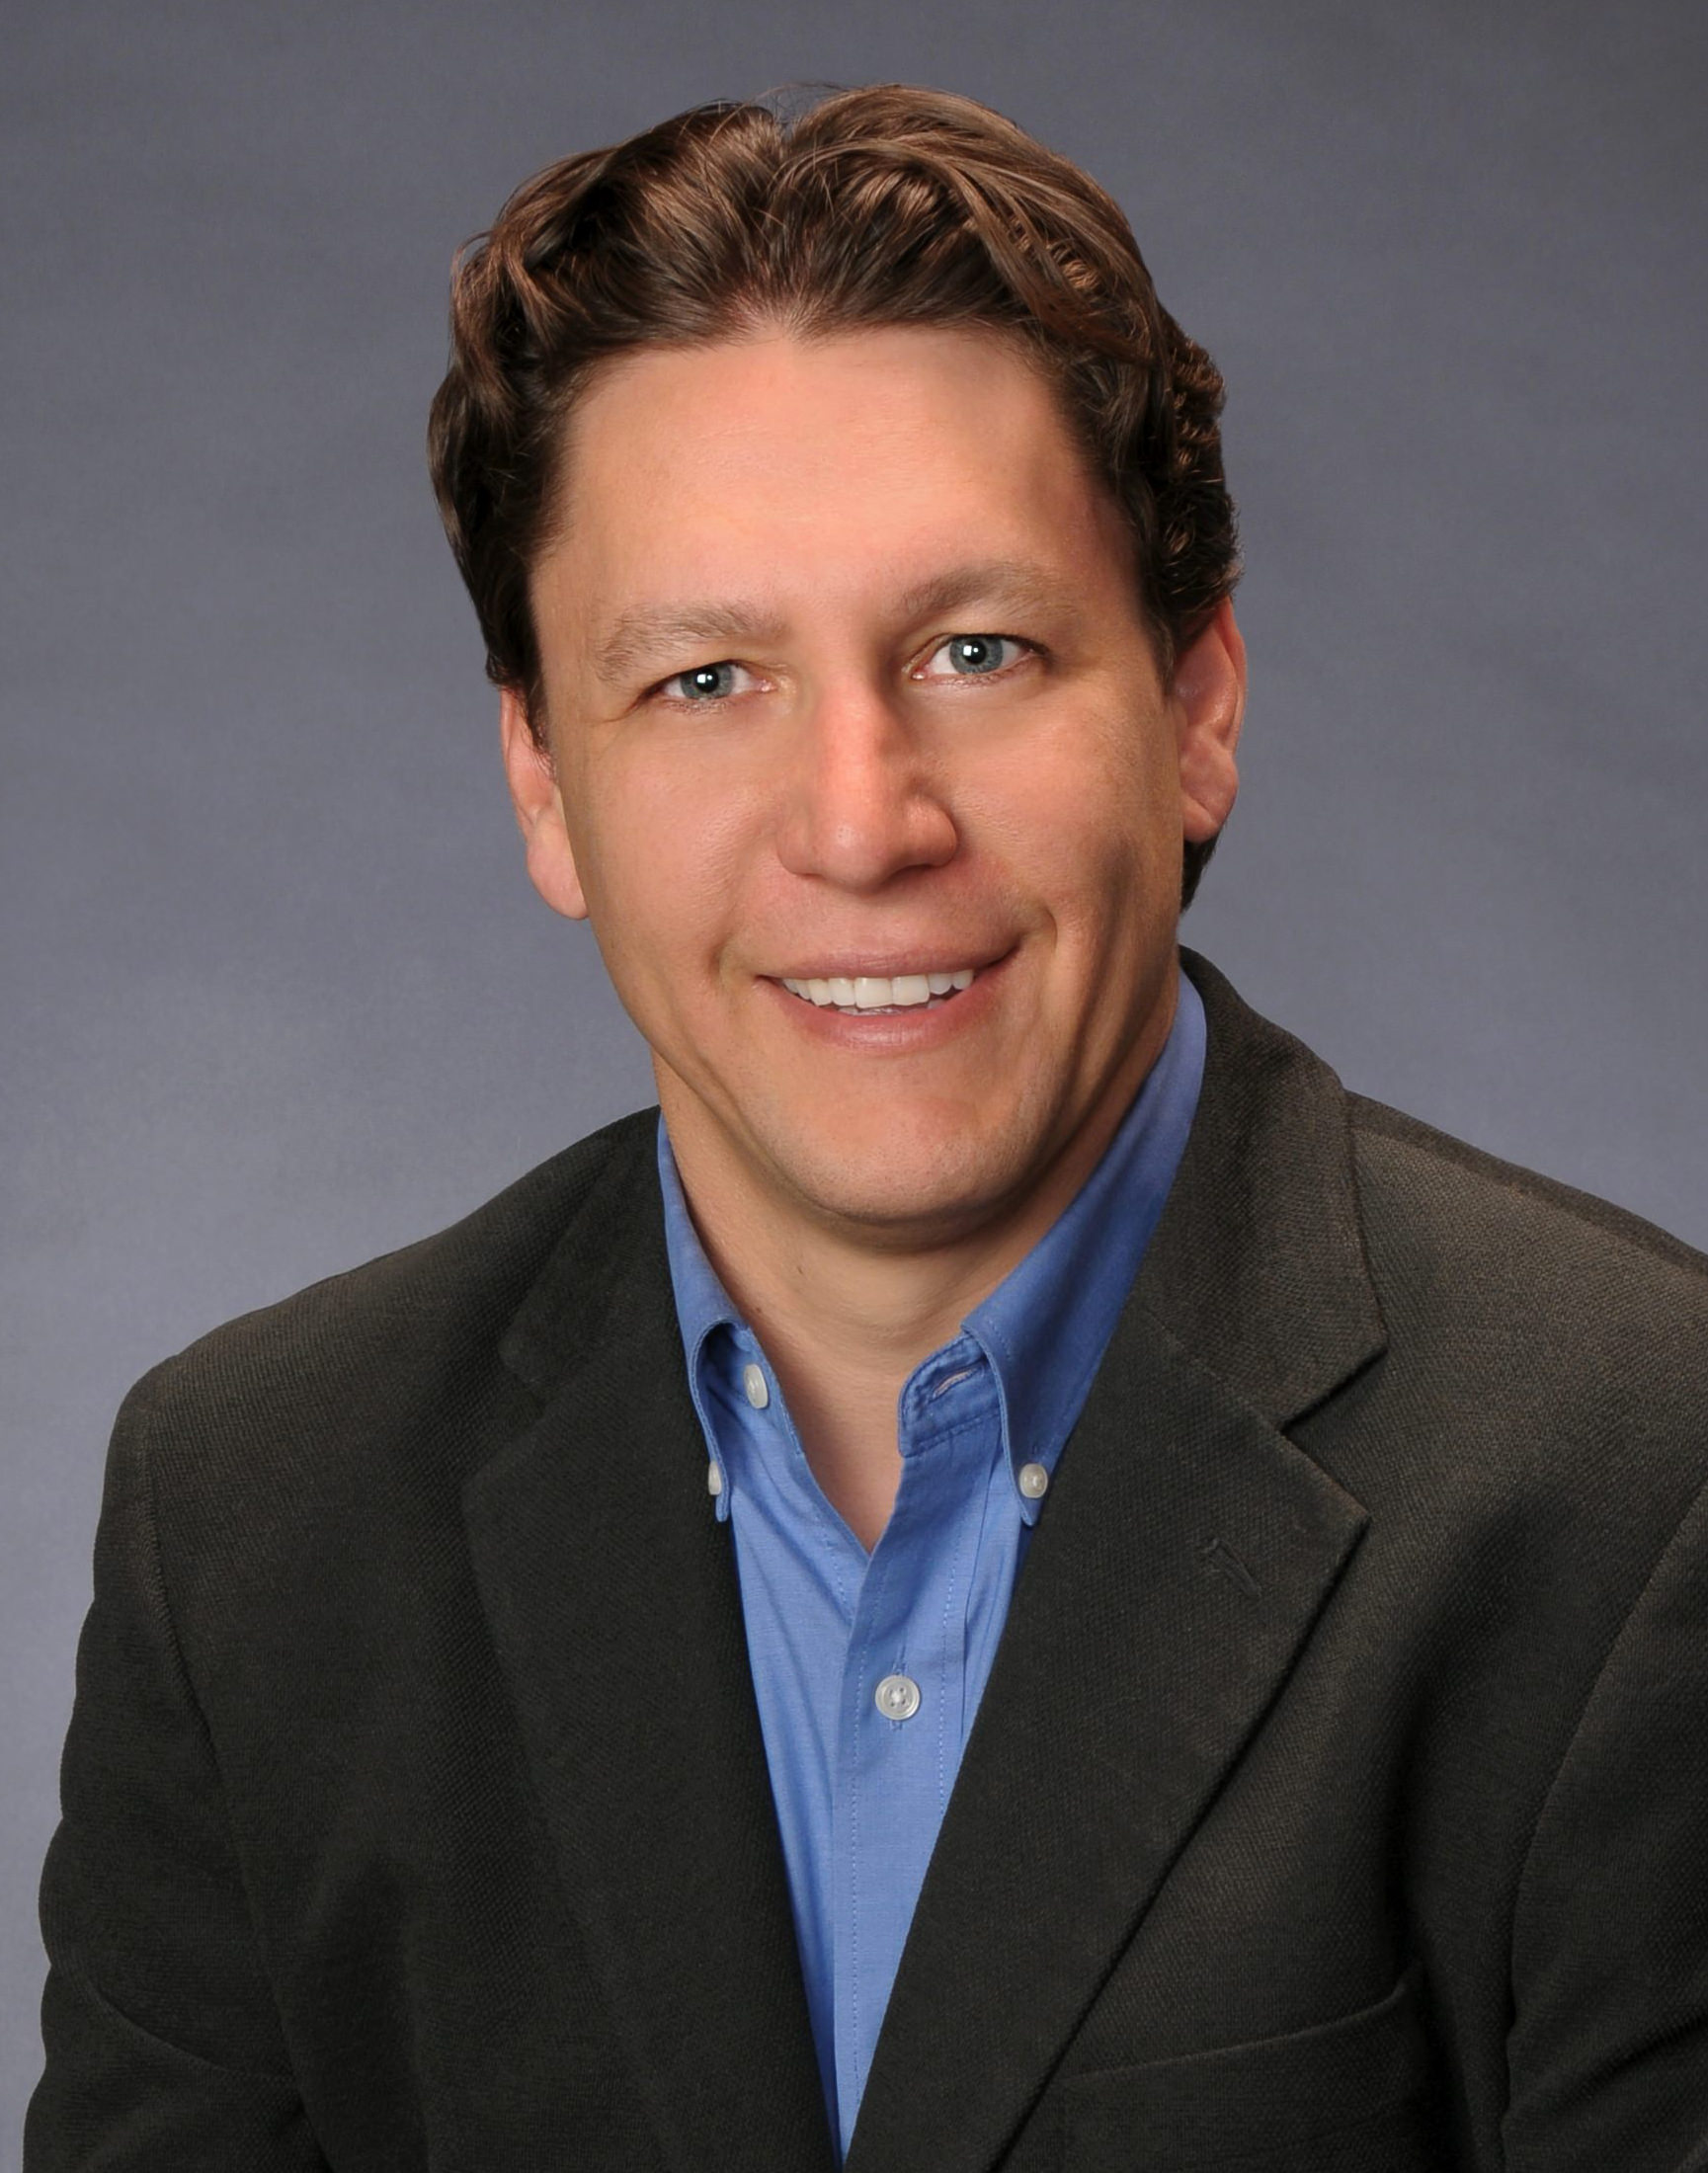 Jake Lewin - New CEO of Intact US, Inc.